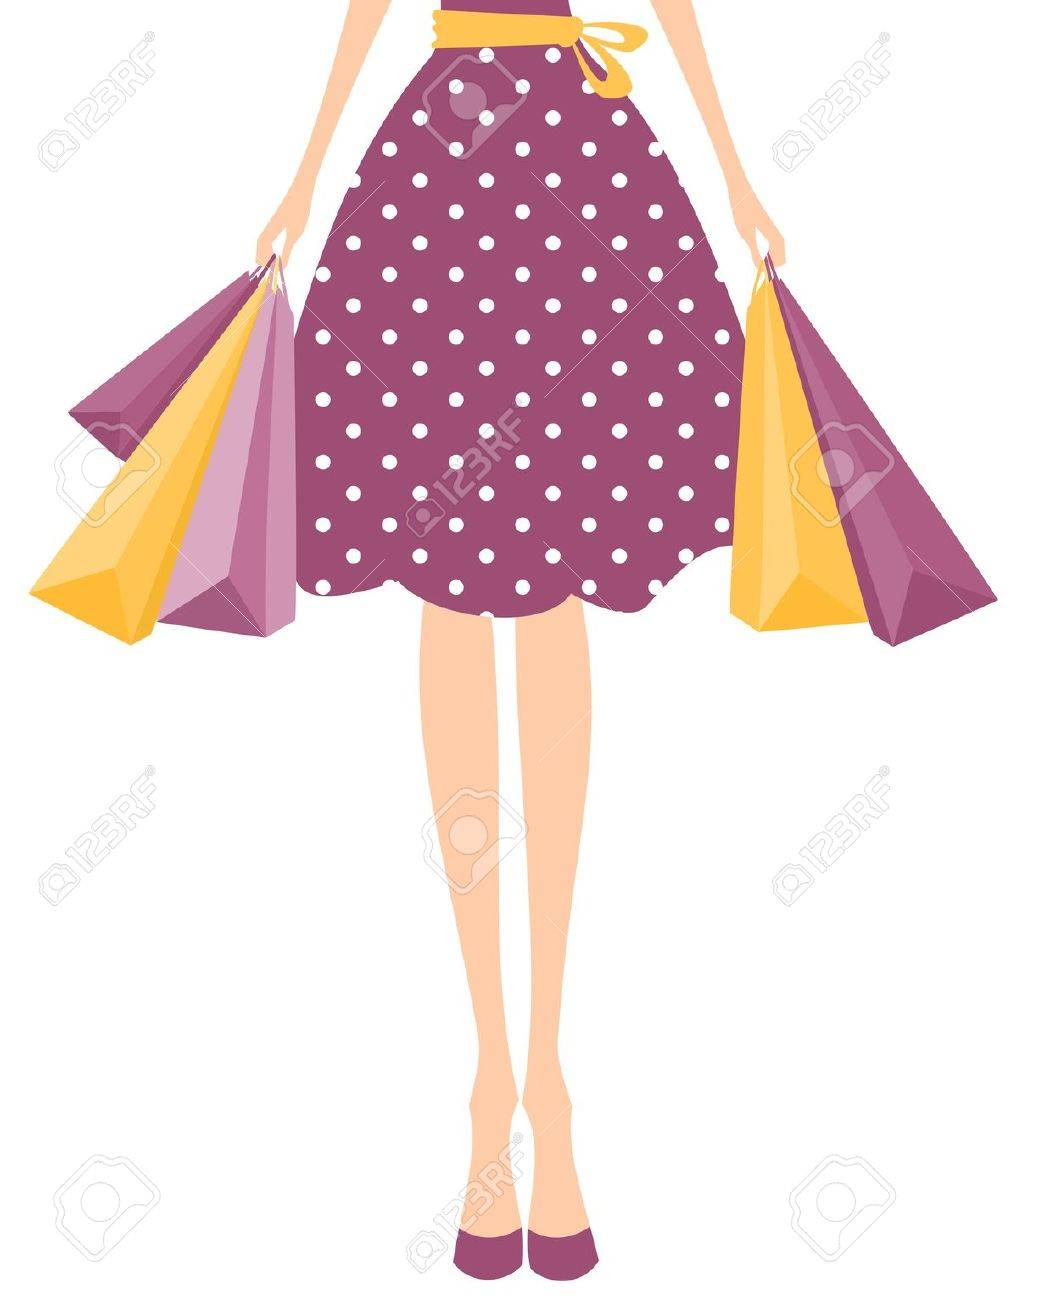 Illustration of a girl in cute polka dot dress holding shopping bags. - 12980877